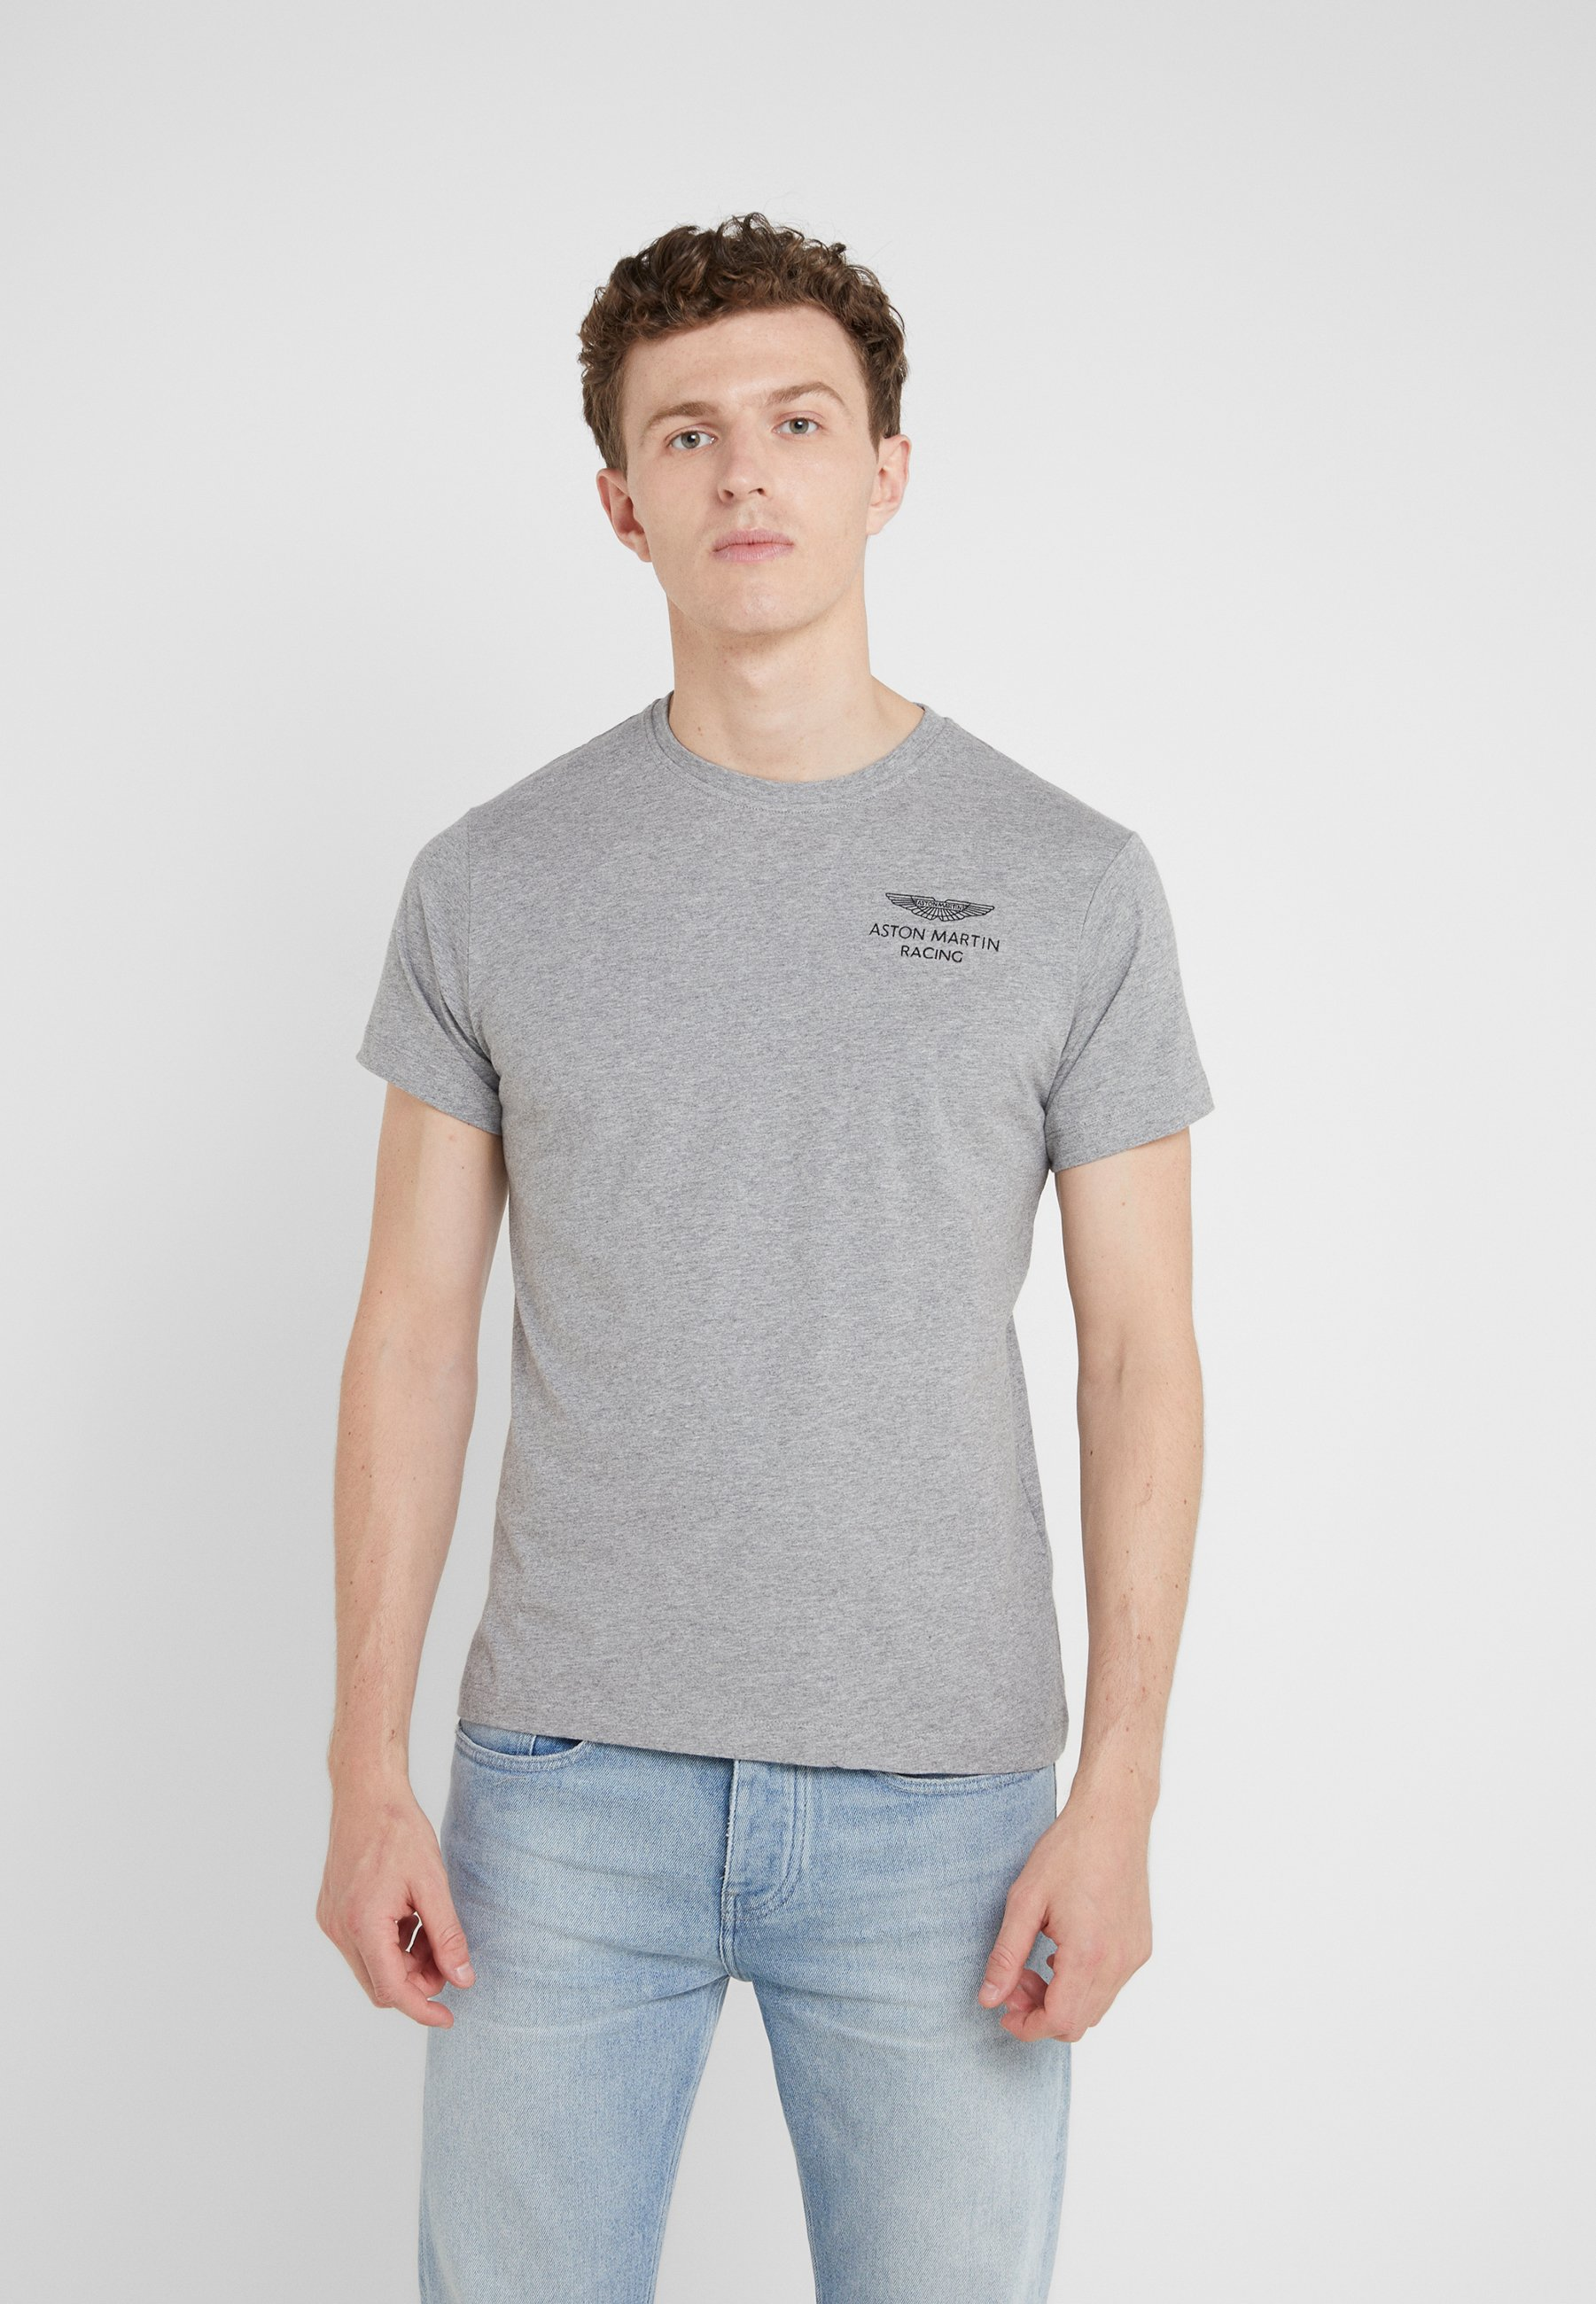 Aston Martin Logo Basique Racing Grey TeeT Hackett shirt TJK1lFc